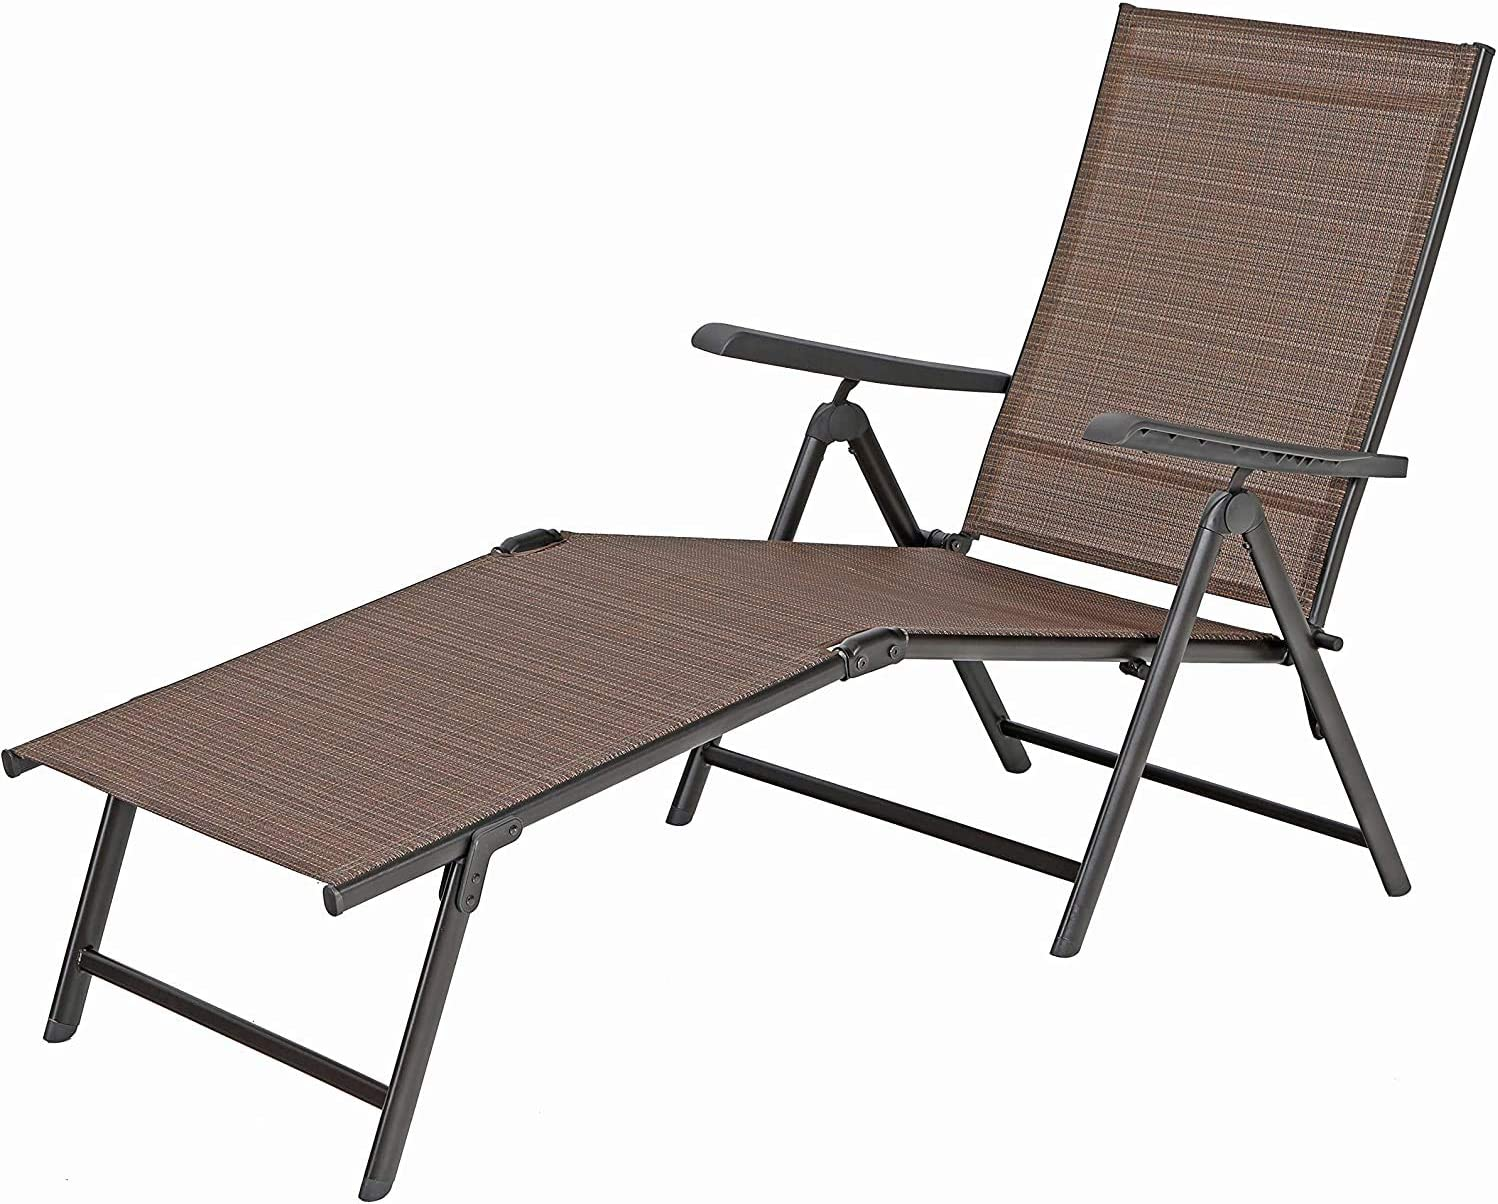 Amazon Com Phi Villa 5 Stages Adjustable Patio Folding Lounge Chair Metal Outdoor Recliner Chaise For Beach Yard Pool Brown Kitchen Dining